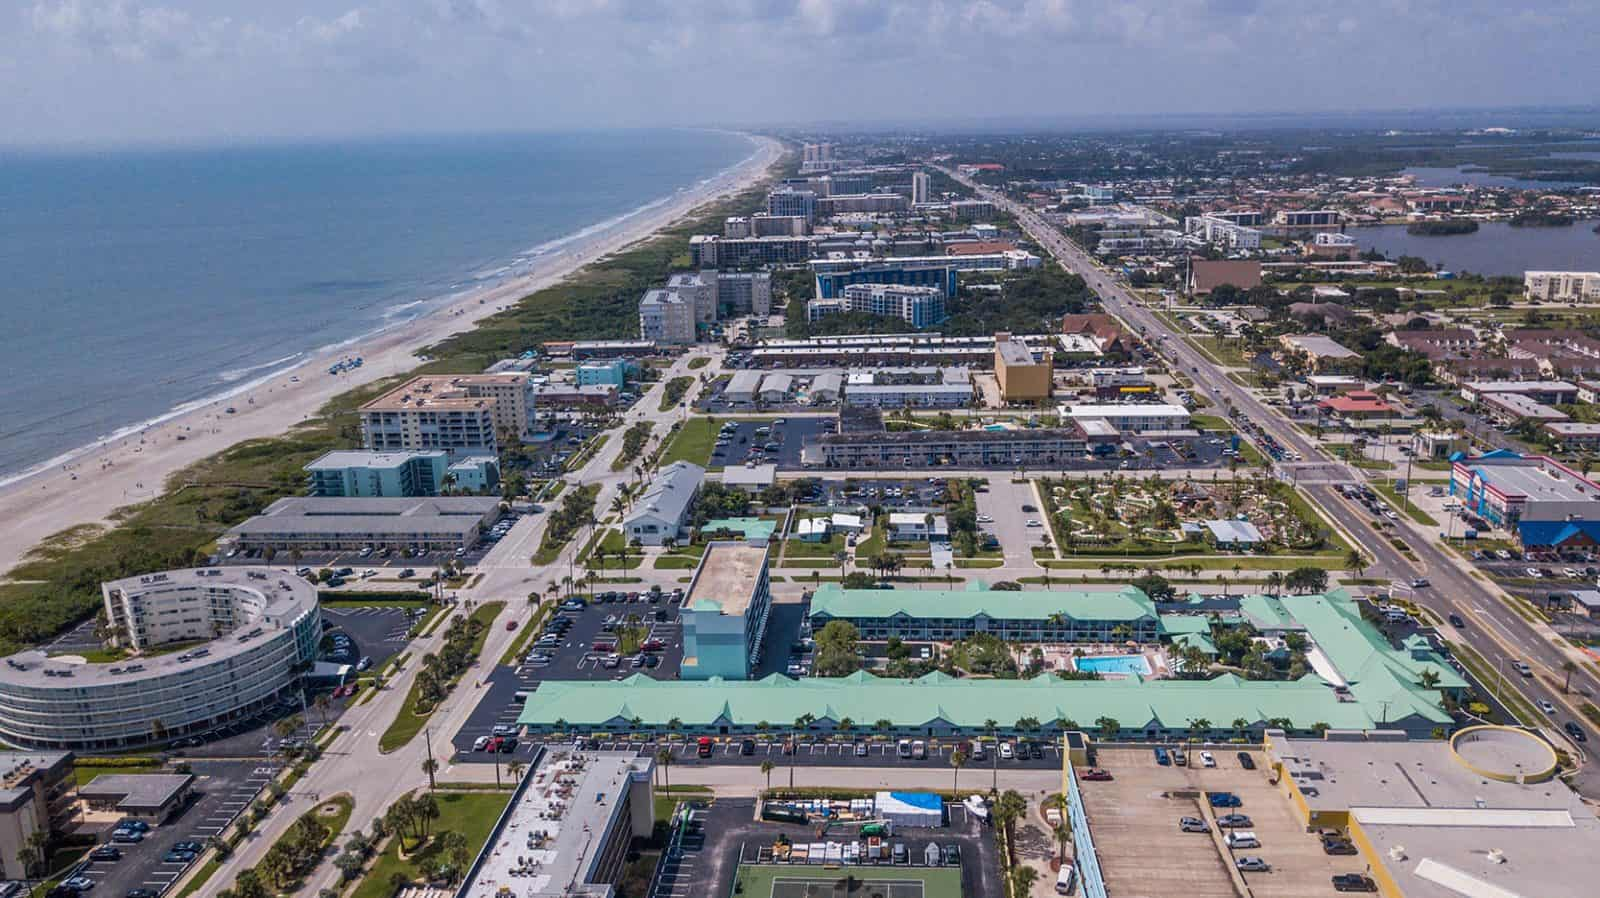 aerial drone photo of Cocoa Beach, Florida